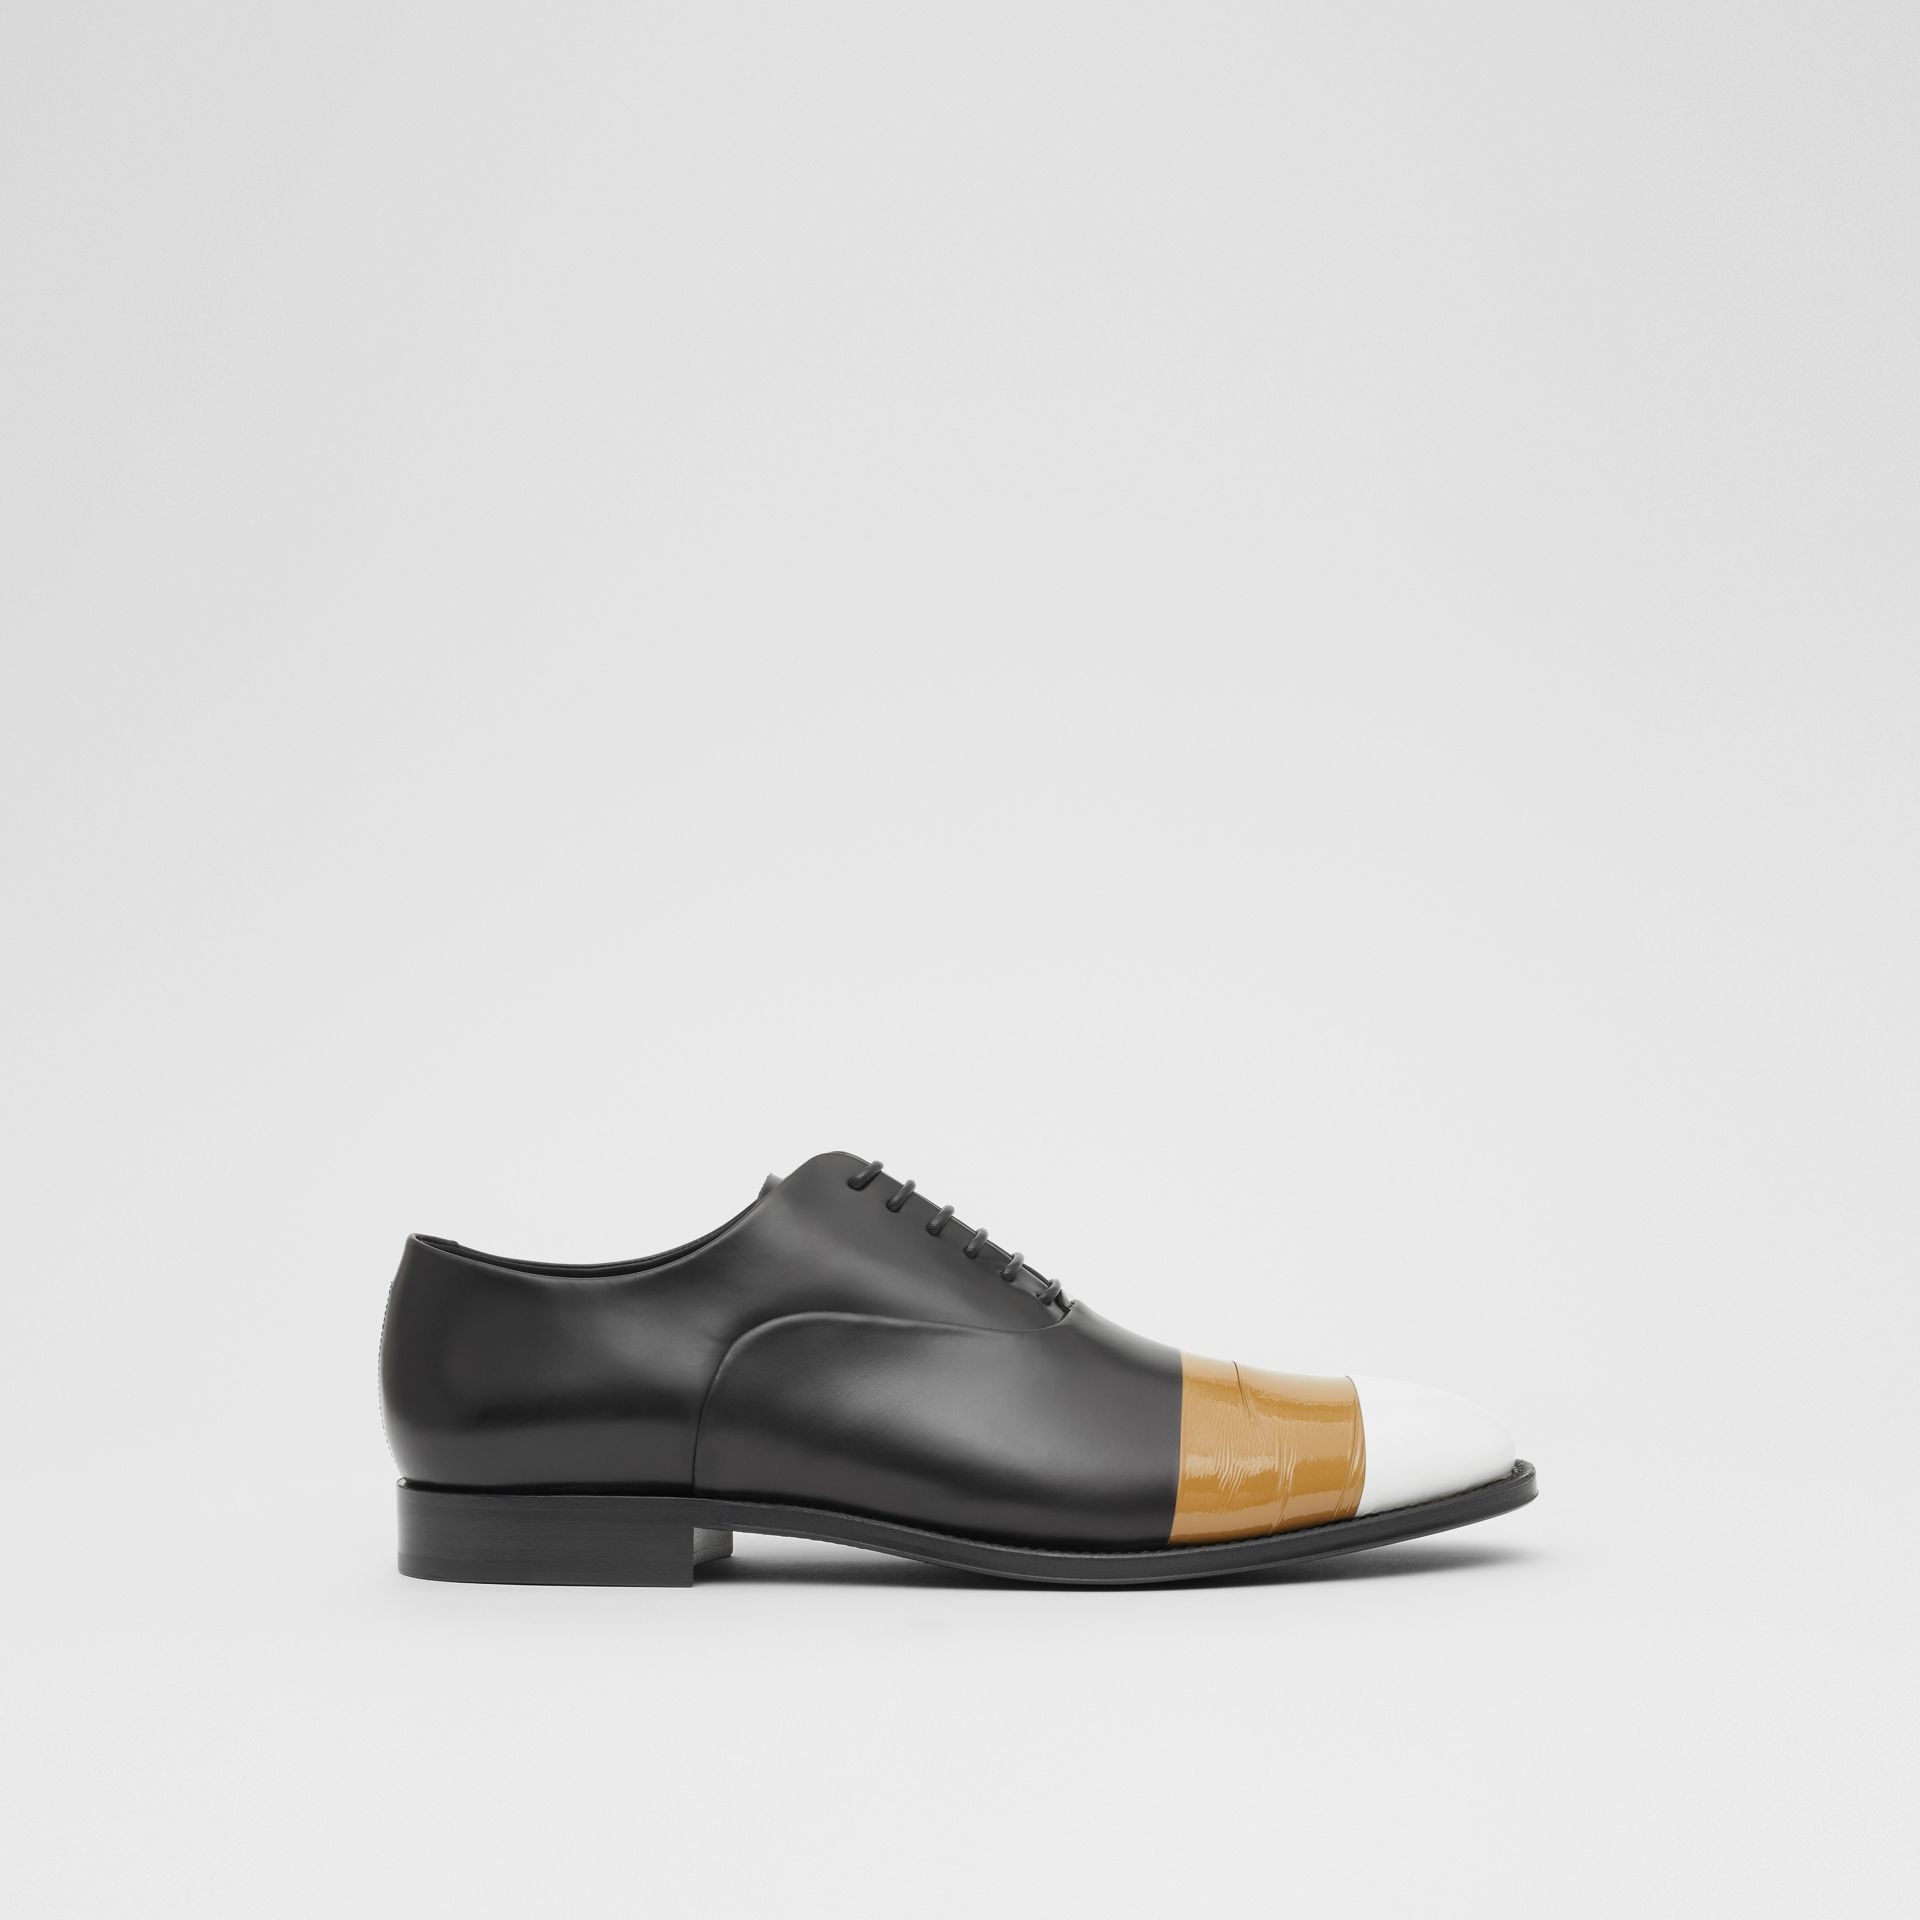 Tape Detail Leather Oxford Shoes in Black/optic White - Men | Burberry Australia - gallery image 4